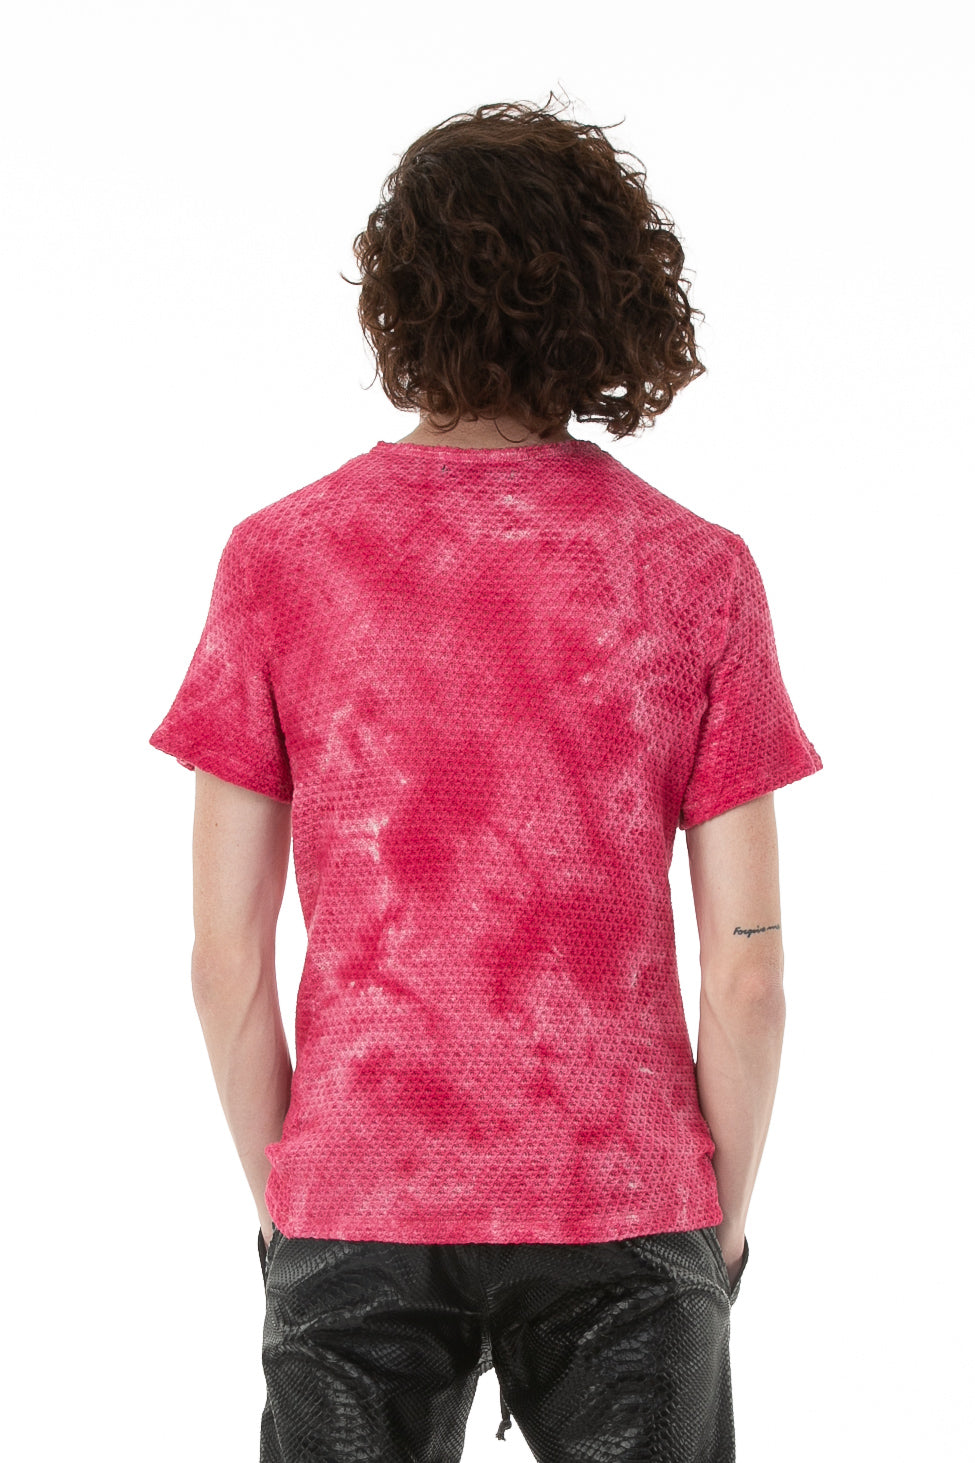 Backside of male model wearing Pointelle Tee in Washed Pink